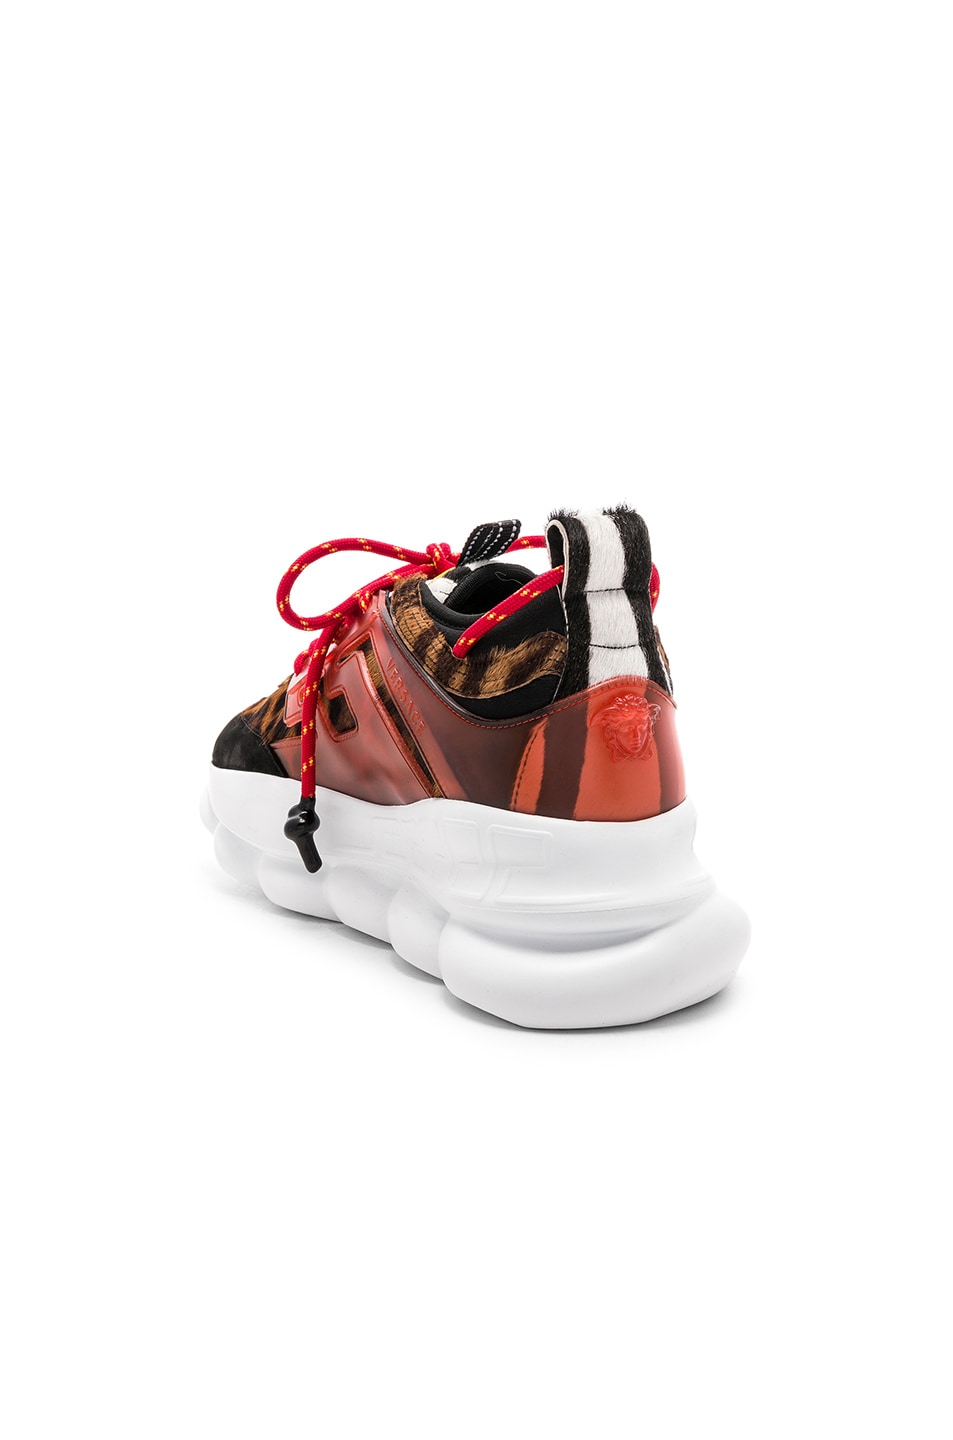 Image 3 of VERSACE Calf Hair Chain Reaction Sneakers in Black & Red Print